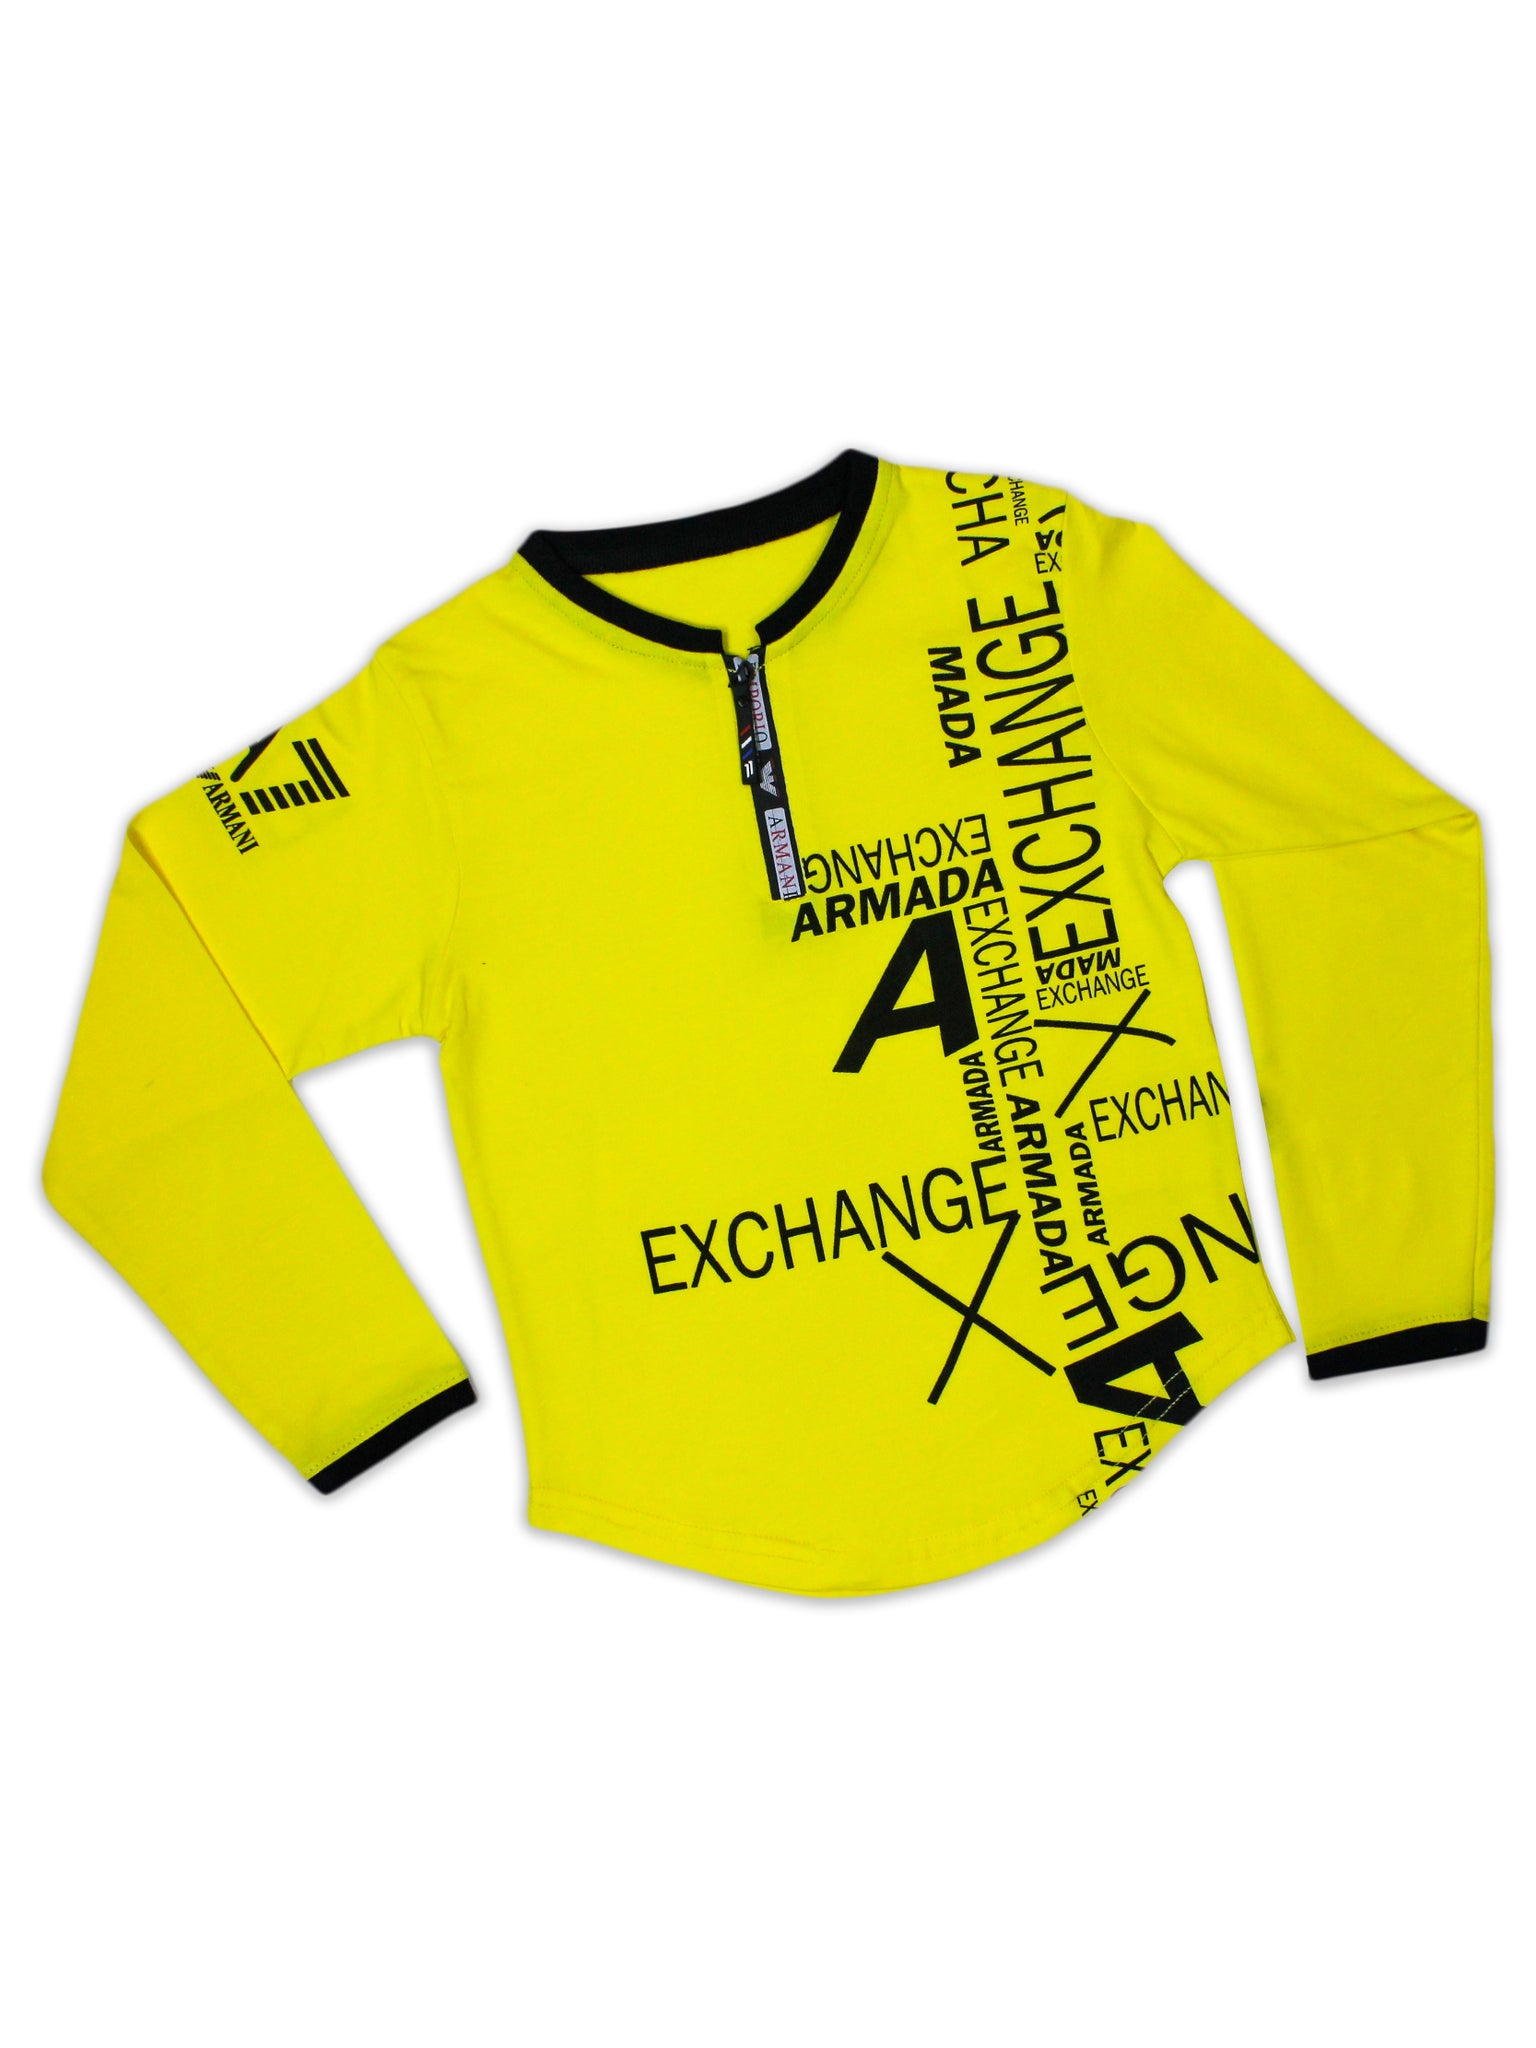 ATT Boys T-Shirt 3 Yrs - 10 Yrs Printed AX Yellow